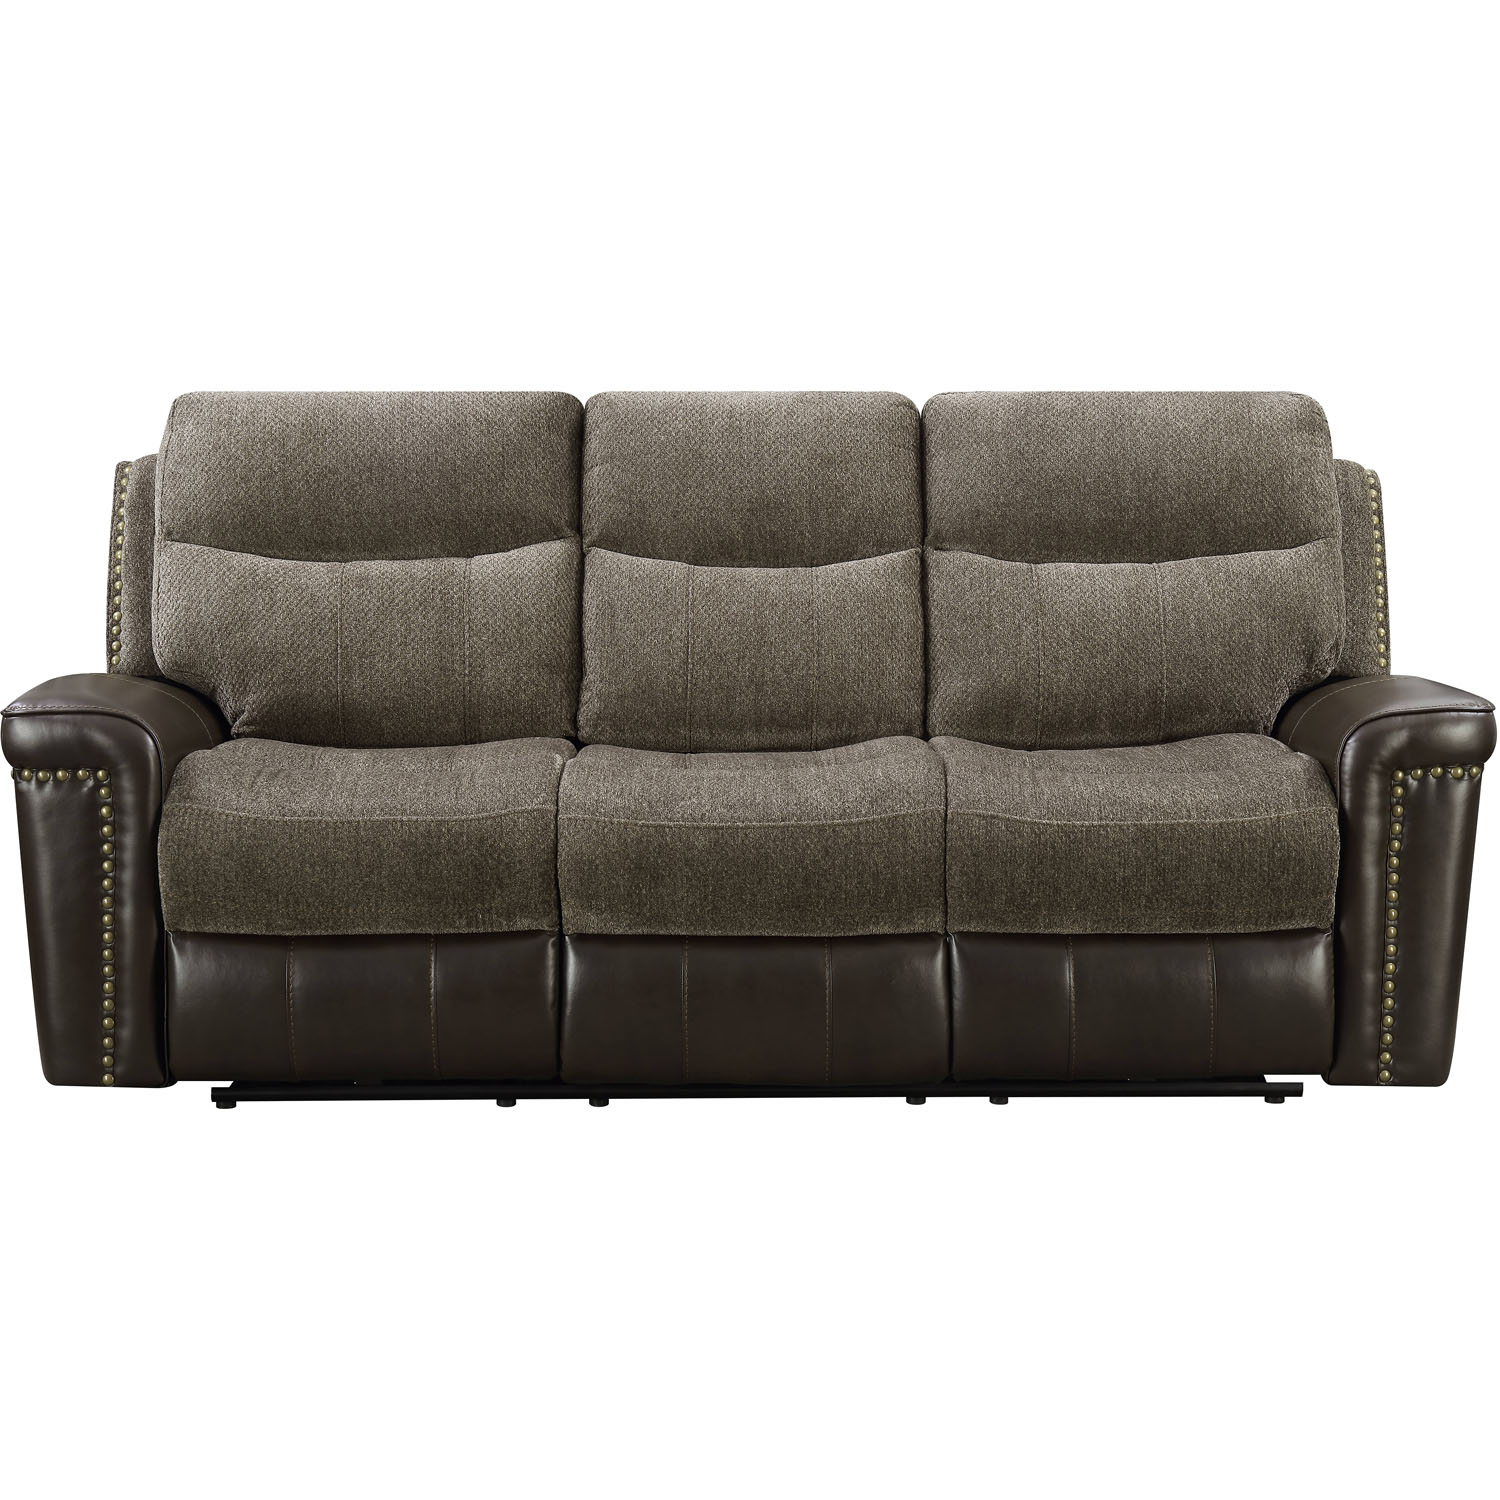 Cambridge Modena Double Reclining Sofa with Dropdown Table